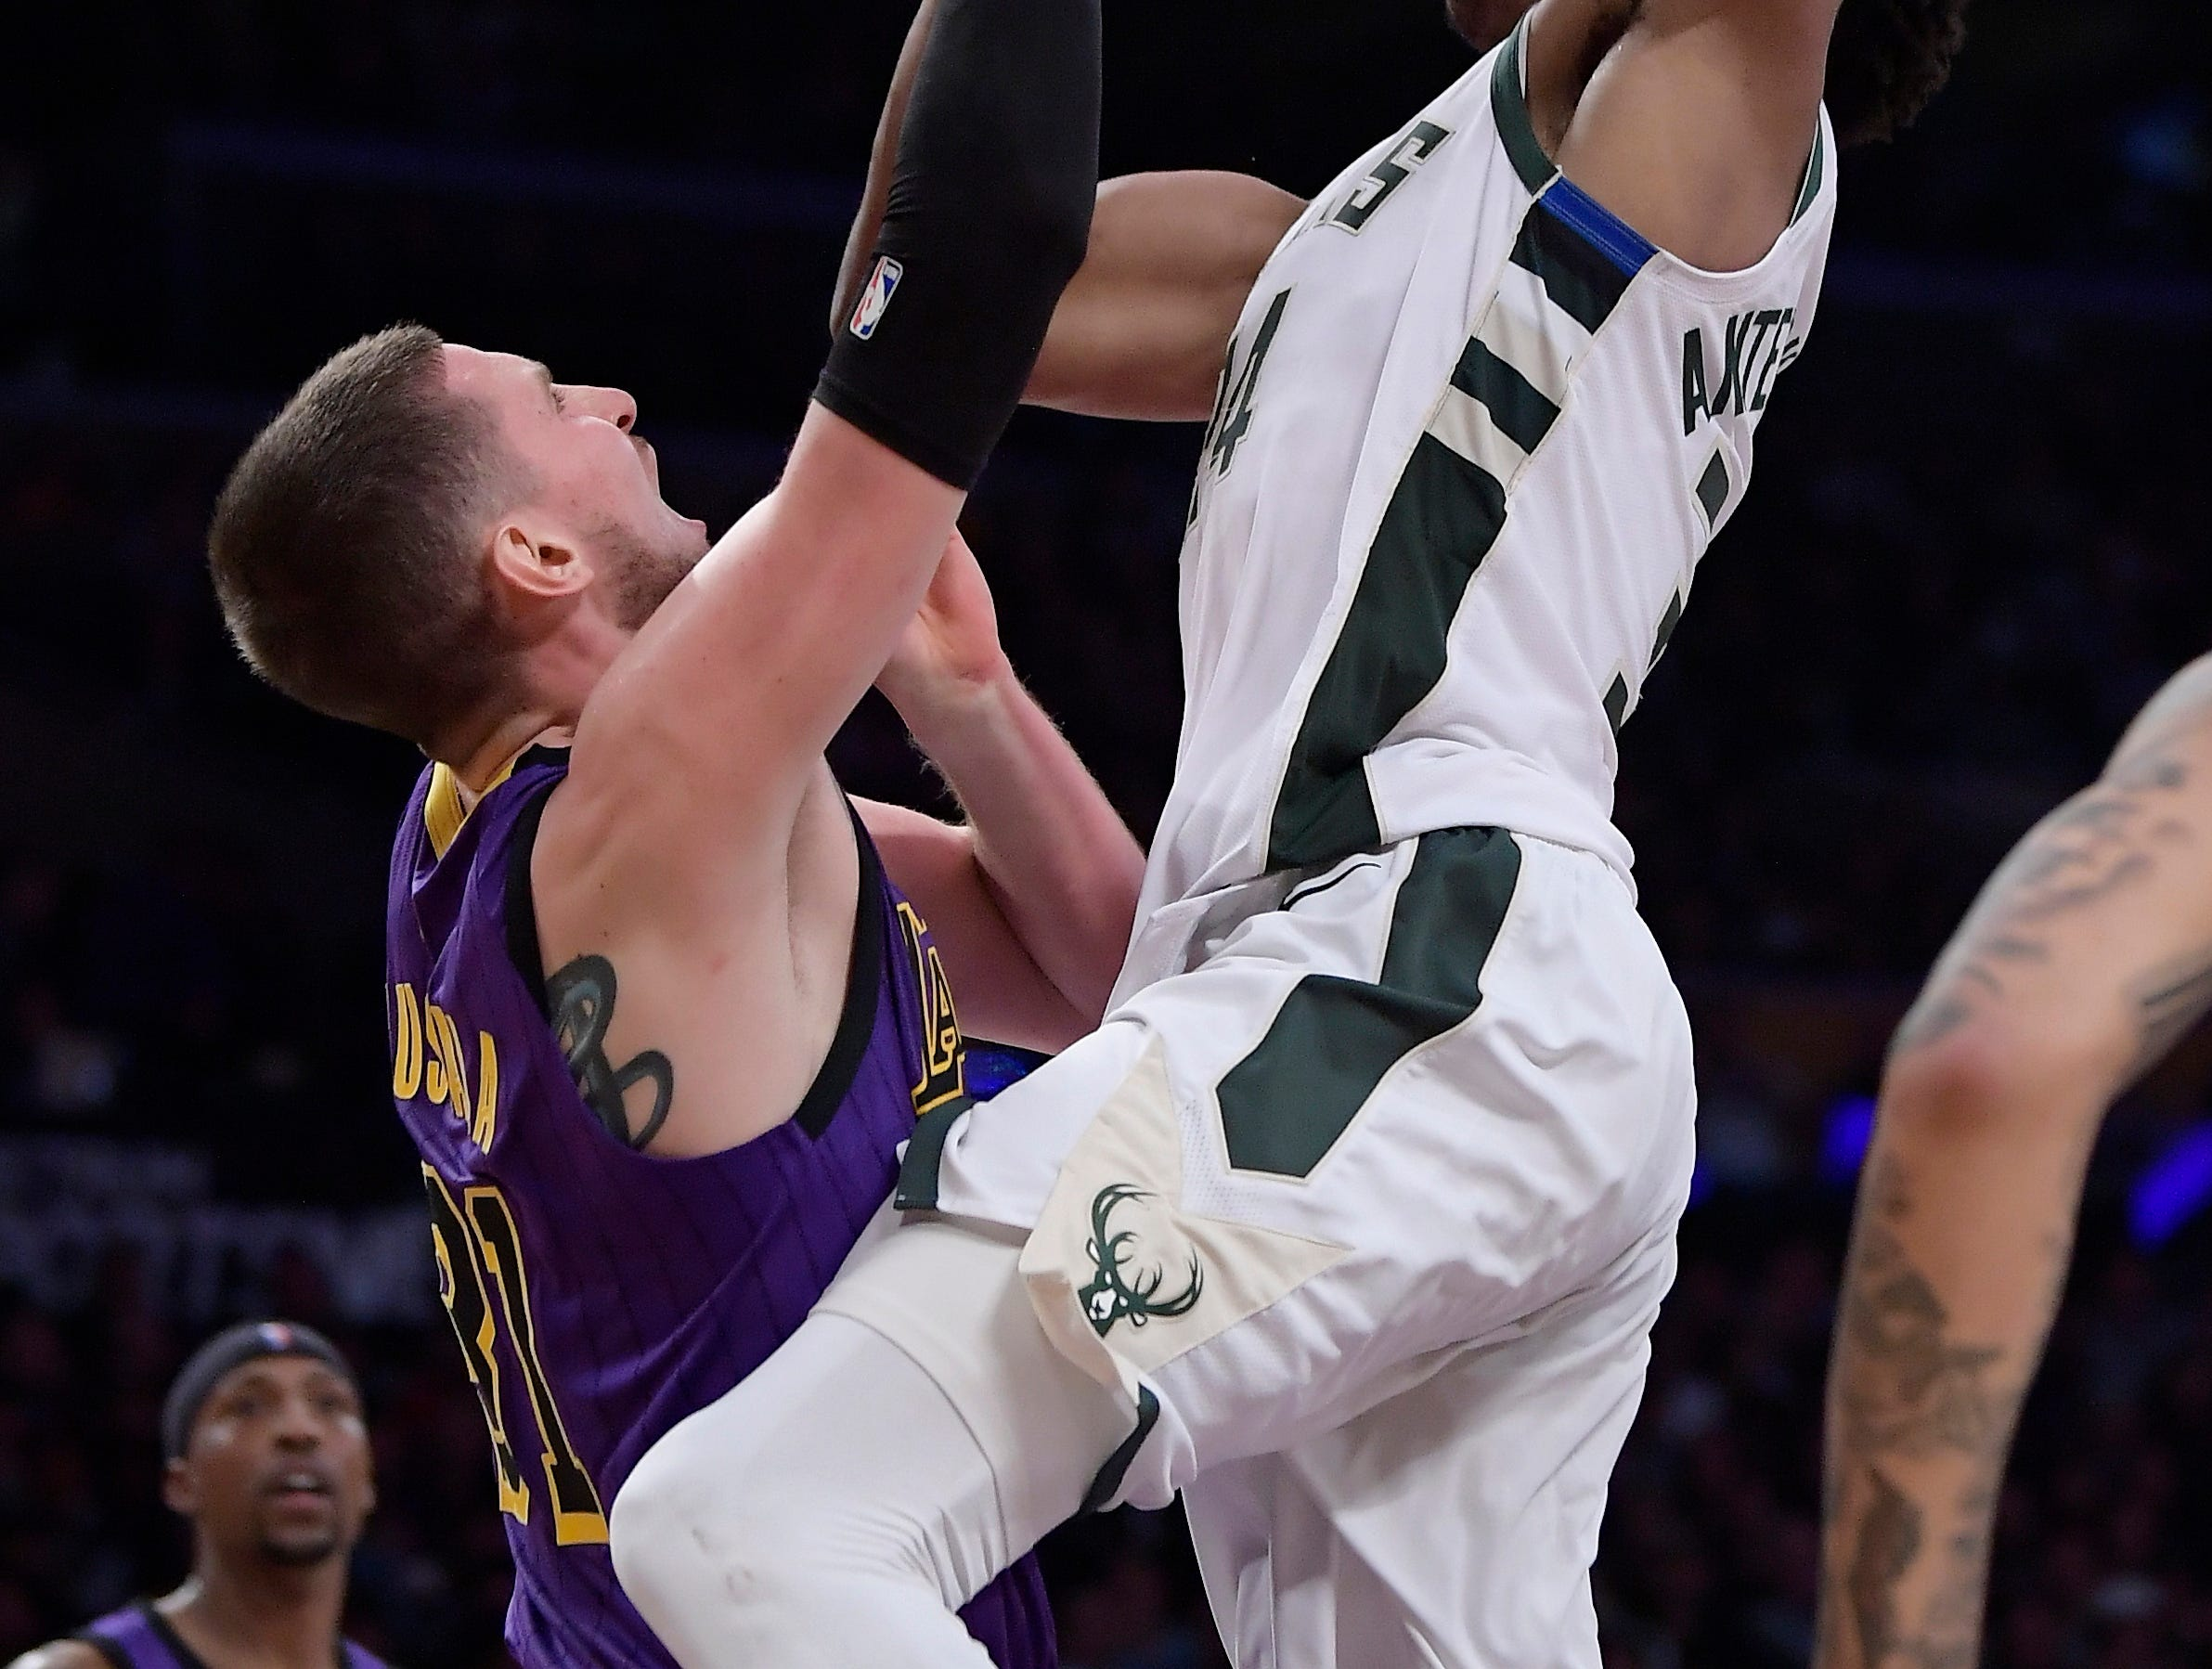 Bucks forward Giannis Antetokounmpo gets ready to hammer down a dunk and add Lakers forward Mike Muscala to his posterized collection during the second half.